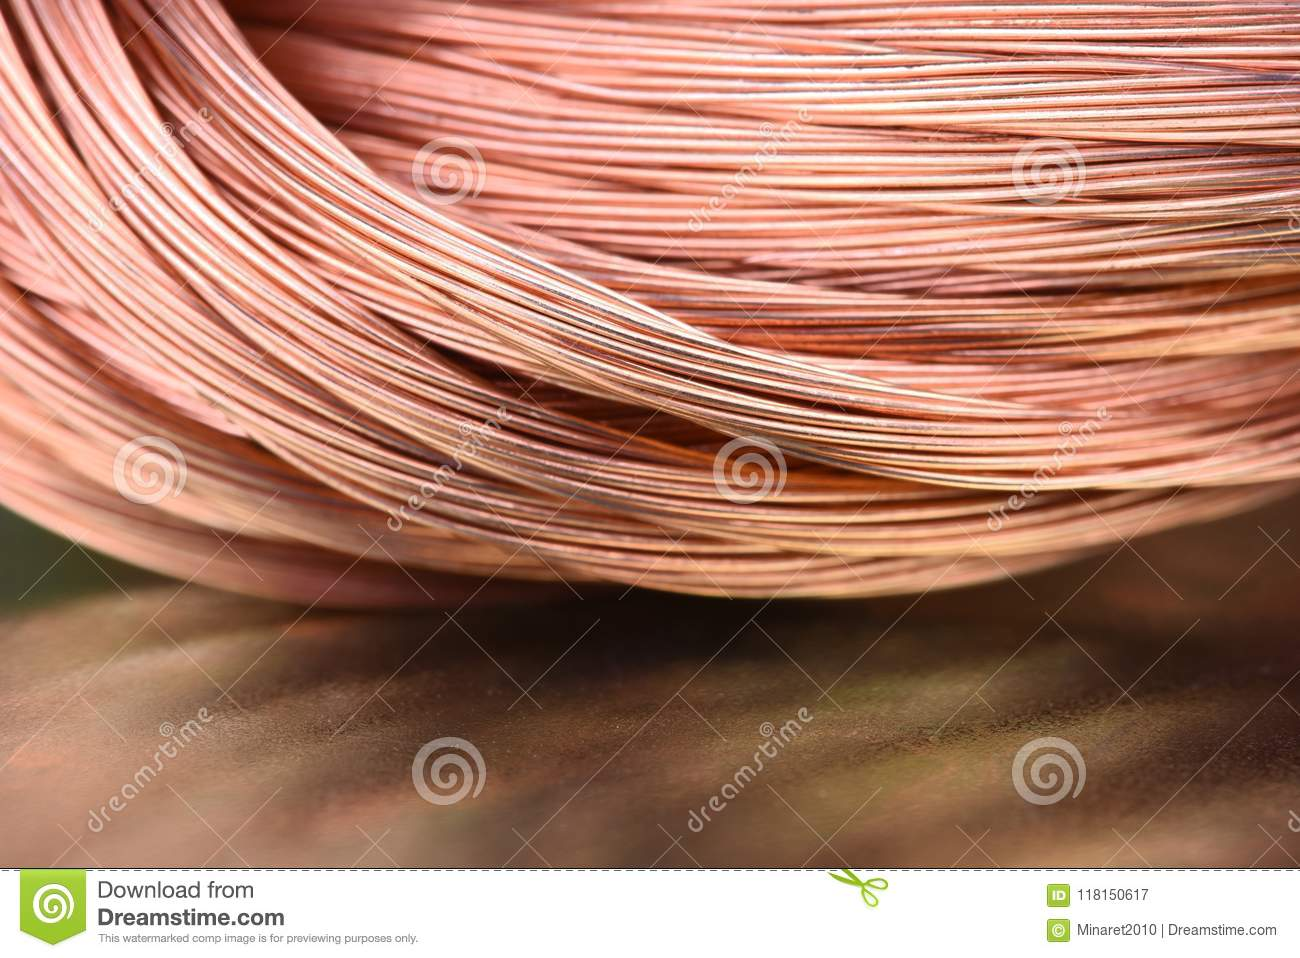 Electrical Wire Raw Materials Center Wiring Types Copper And Metals Industry Closeup Stock Image Rh Dreamstime Com Connectors